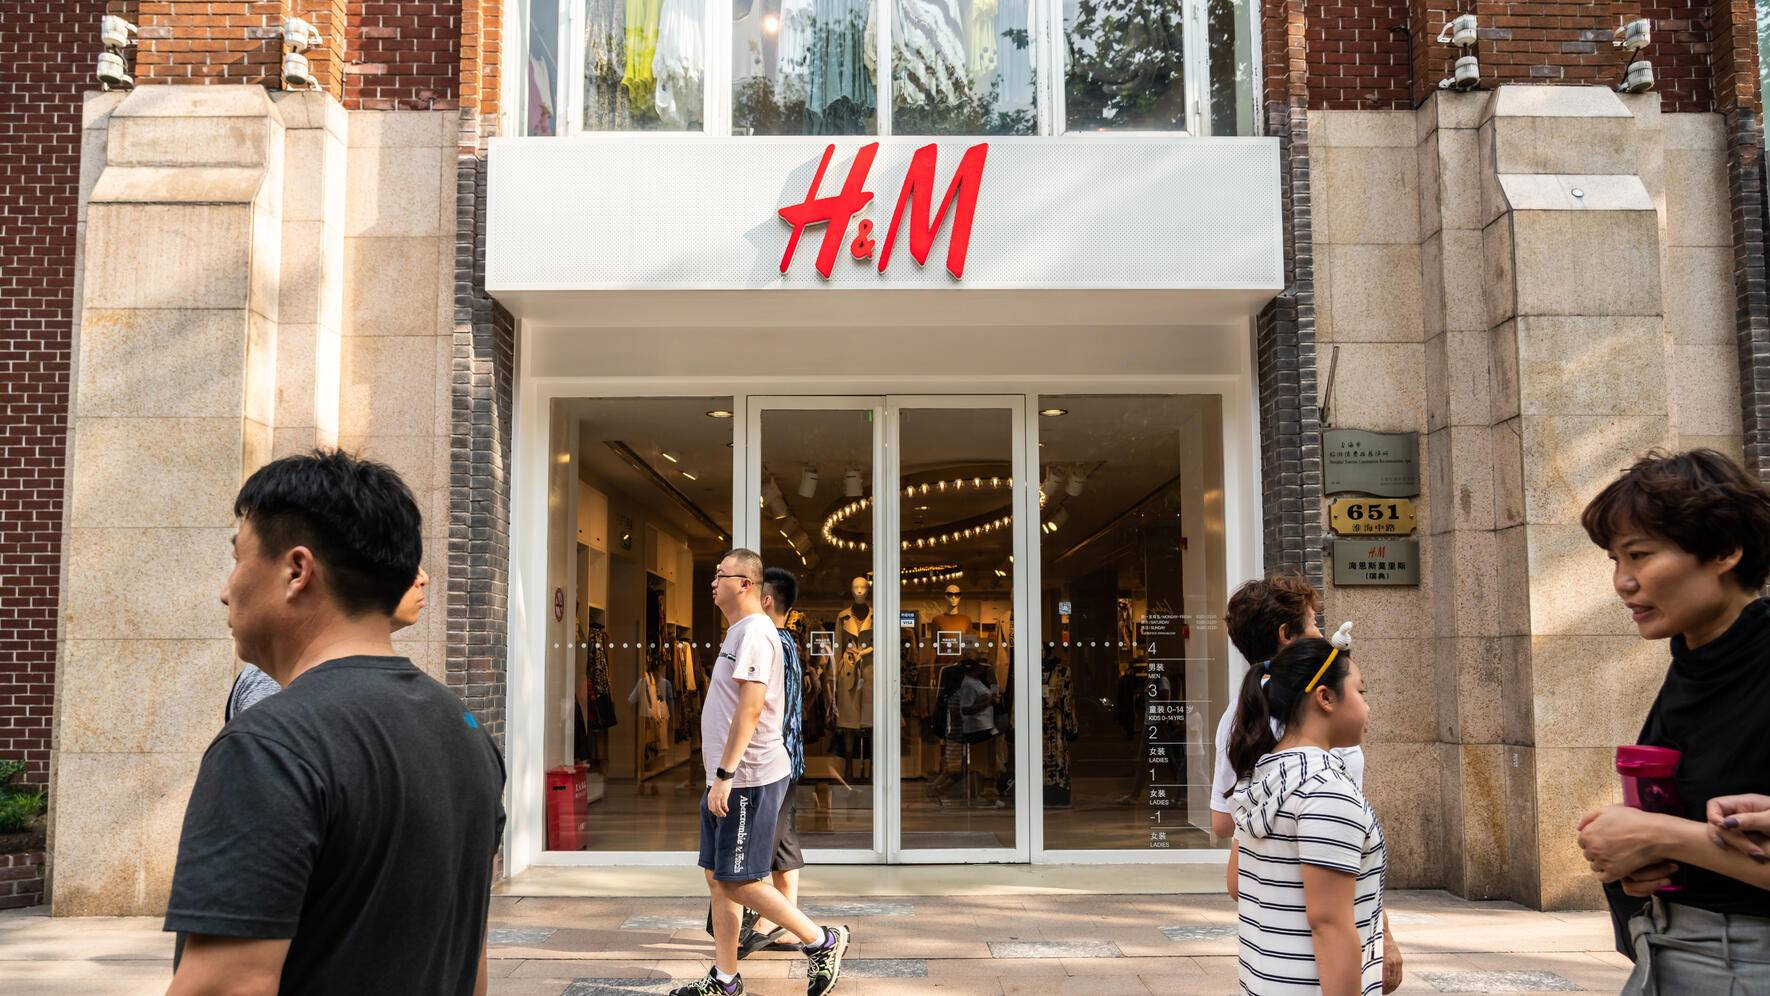 SHANGHAI, CHINA - 2019/09/07: Pedestrians walk past a Swedish multinational clothing-retail company Hennes & Mauritz, or H&M, store in Shanghai. (Photo by Alex Tai/SOPA Images/LightRocket via Getty Images)